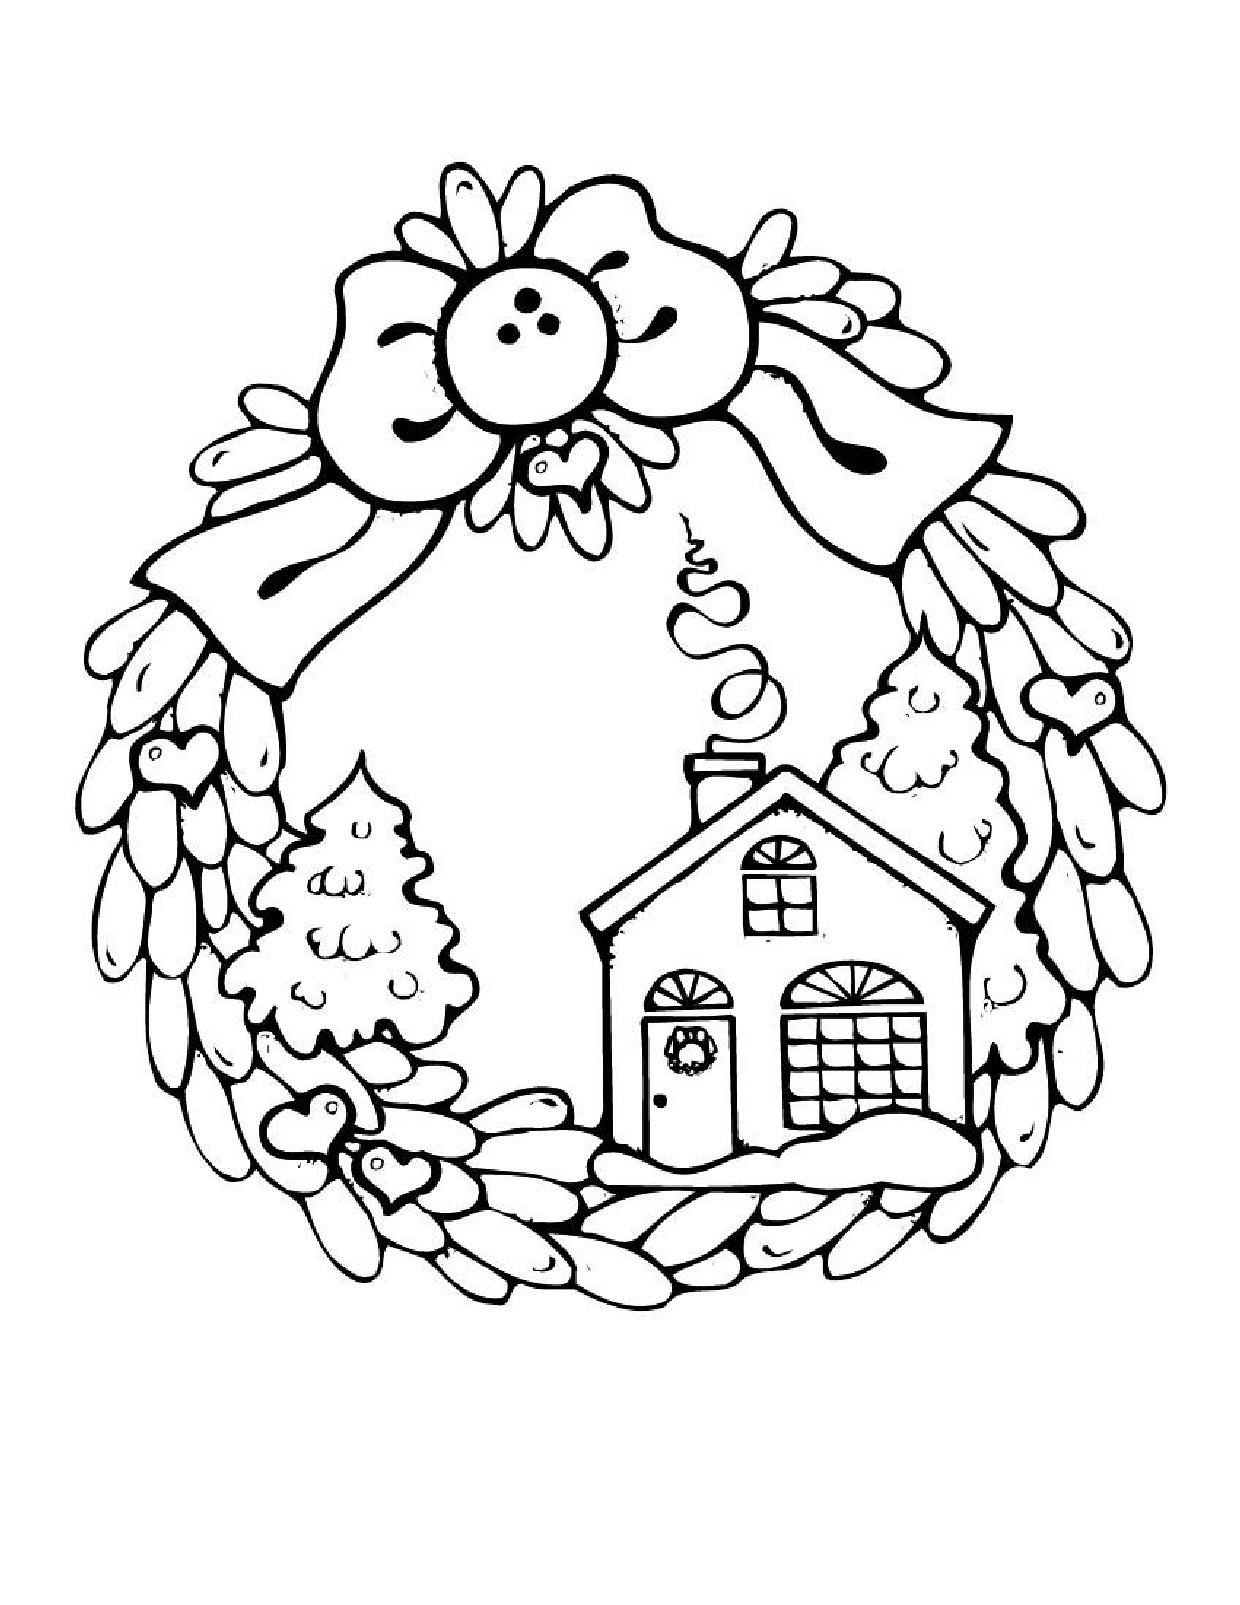 january coloring pages - photo#14